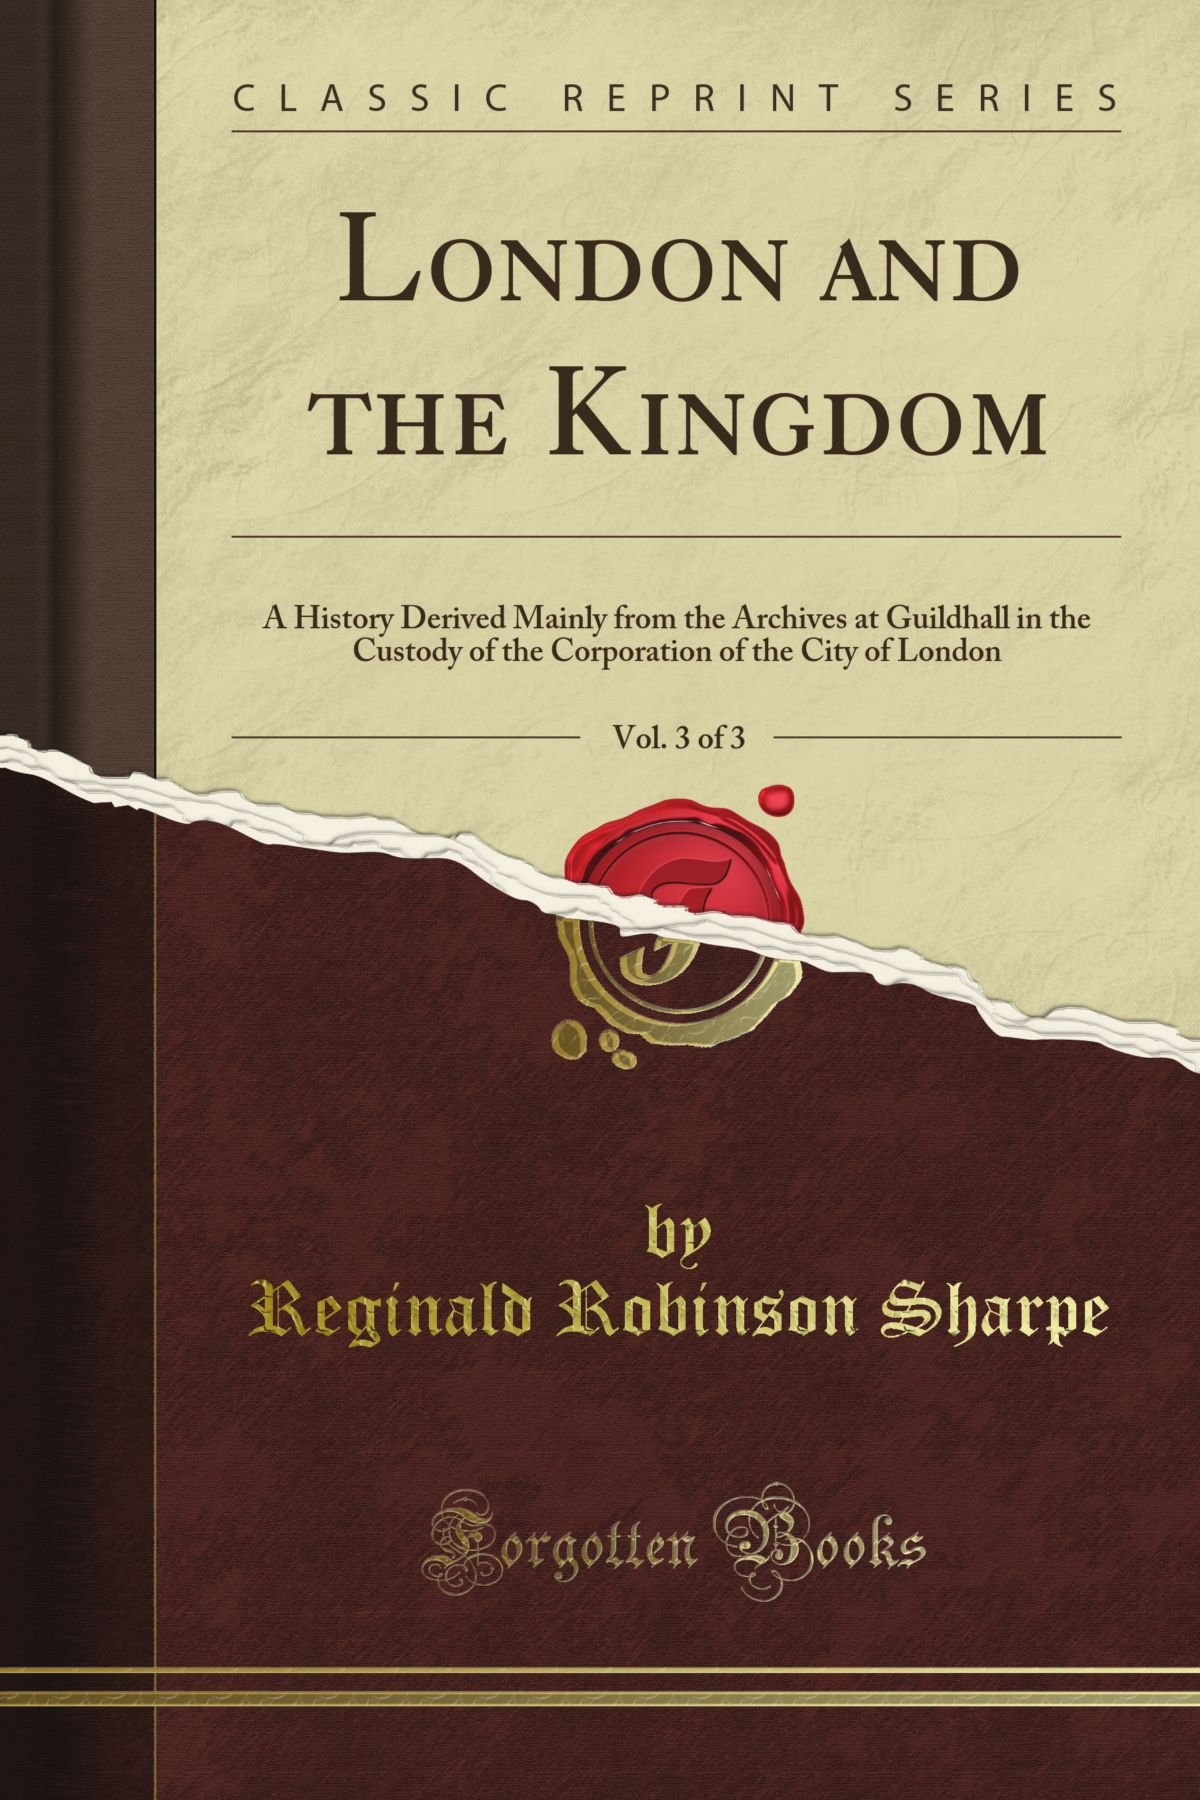 London and the Kingdom: A History Derived Mainly from the Archives at Guildhall in the Custody of the Corporation of the City of London, Vol. 3 of 3 (Classic Reprint) pdf